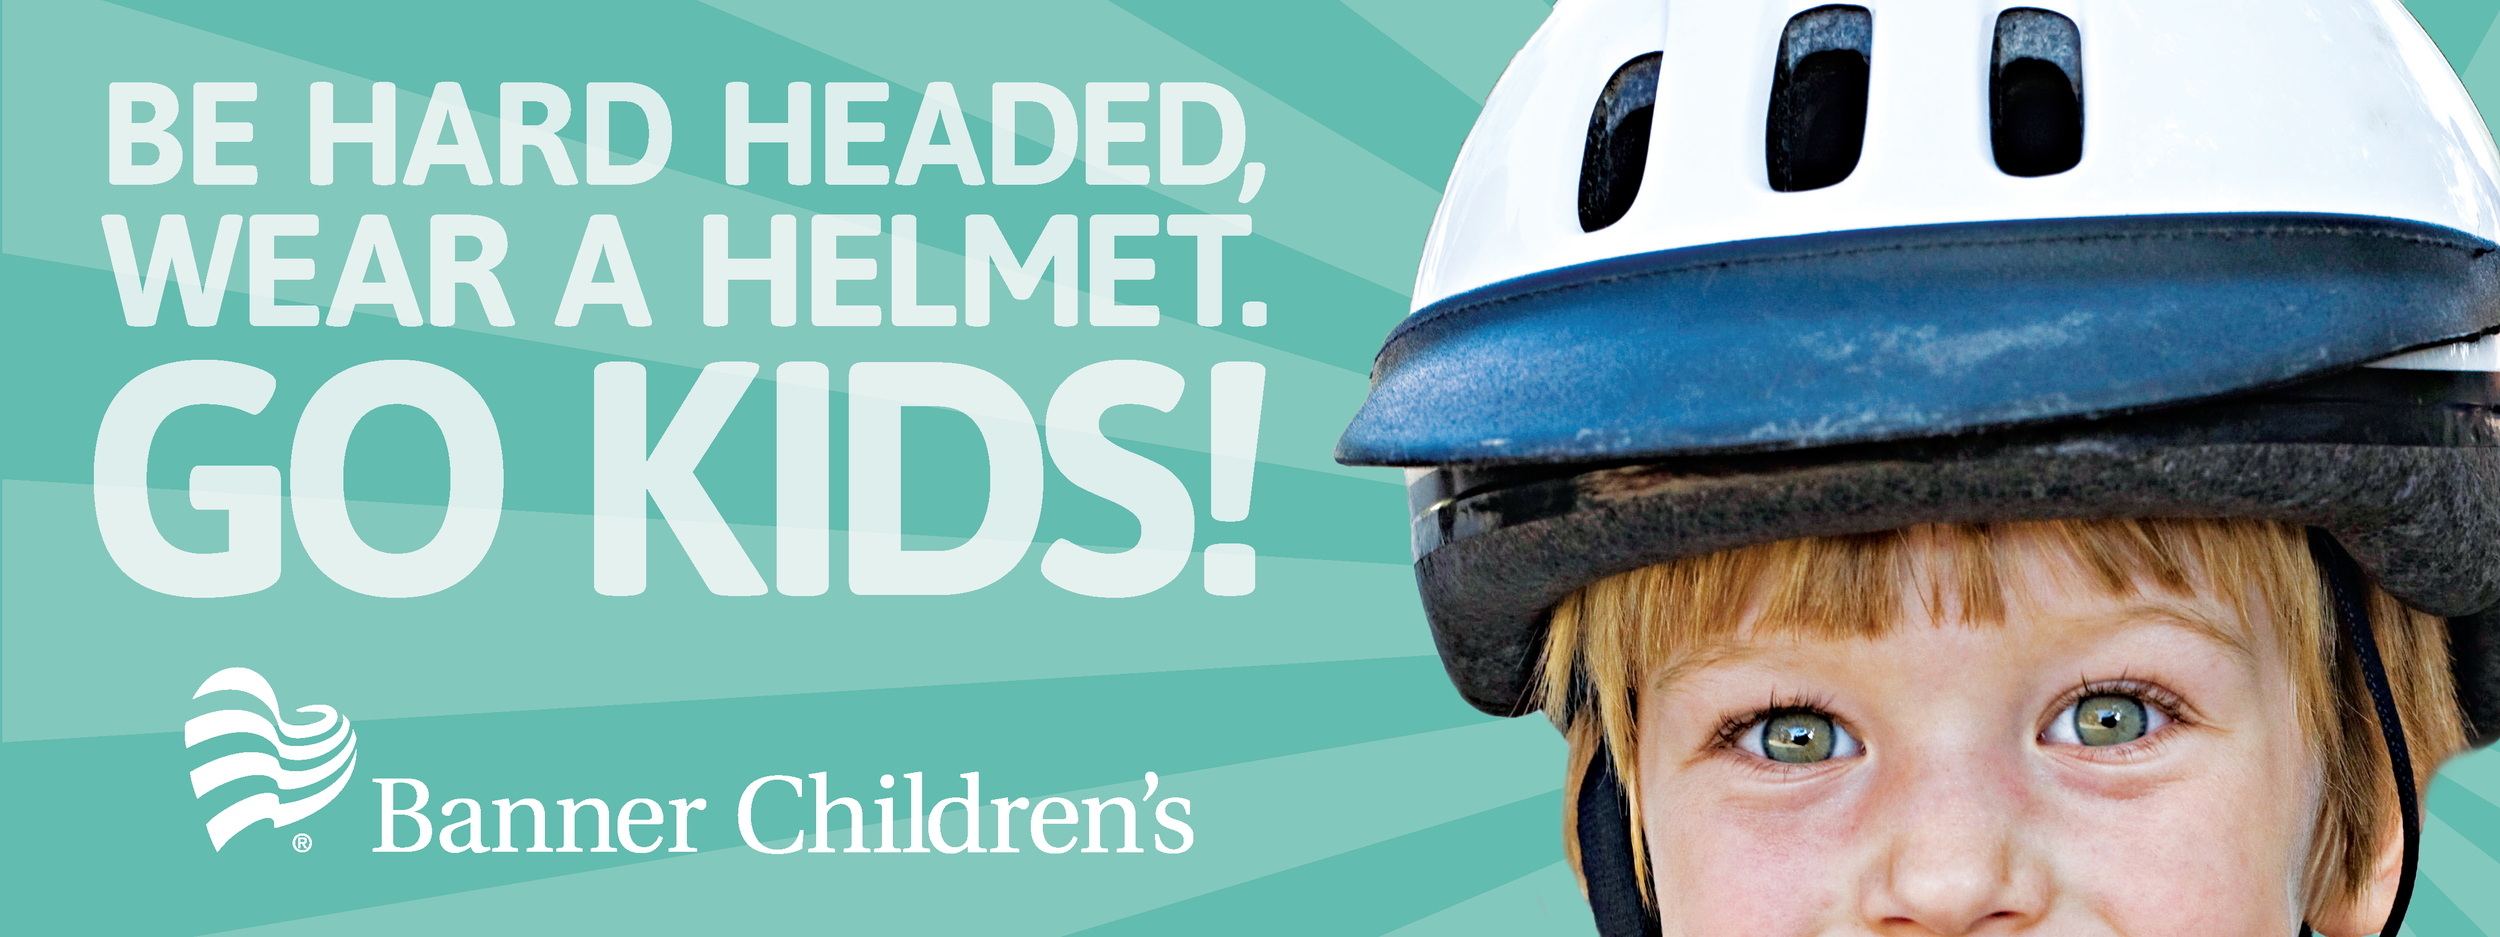 Banner_Childrens_Go_Kids_Banners_8x3_M3_Page_2.png